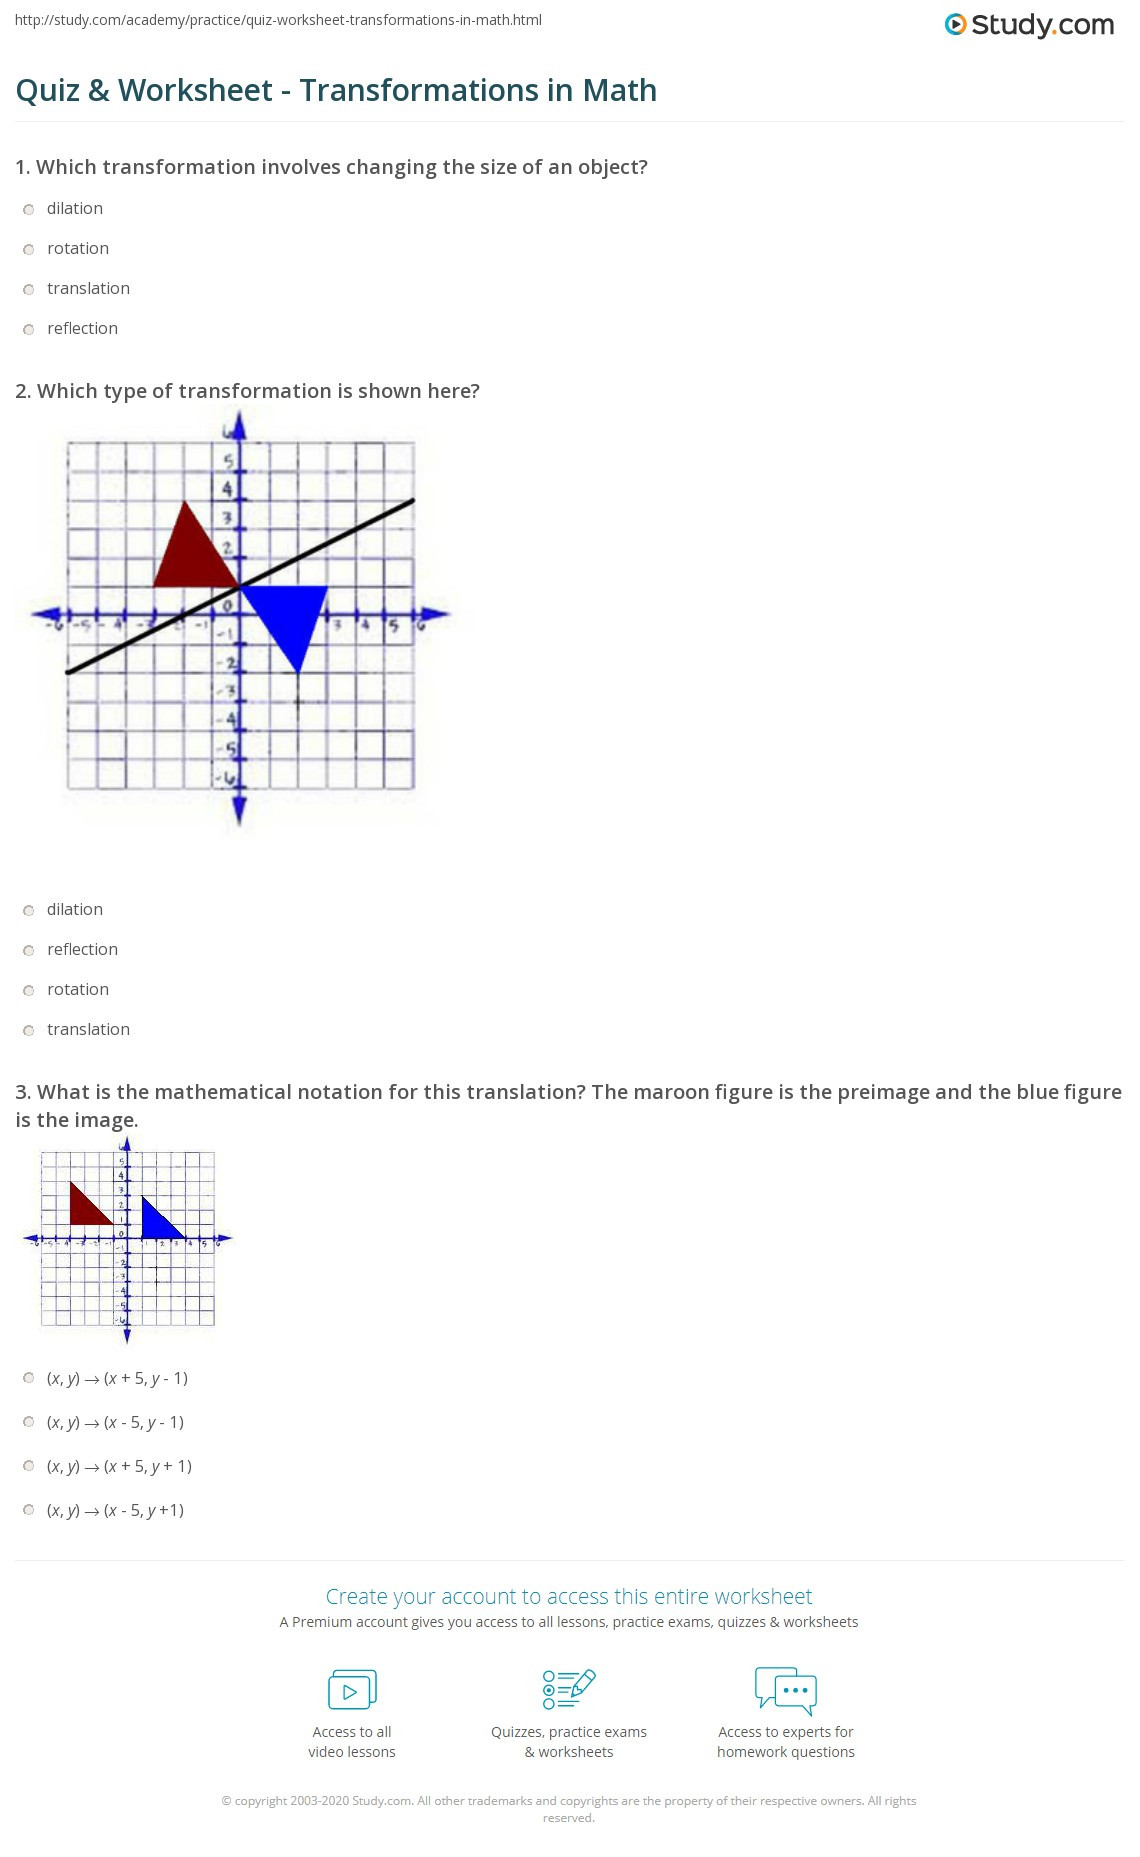 Translation Worksheets Math Quiz & Worksheet Transformations In Math